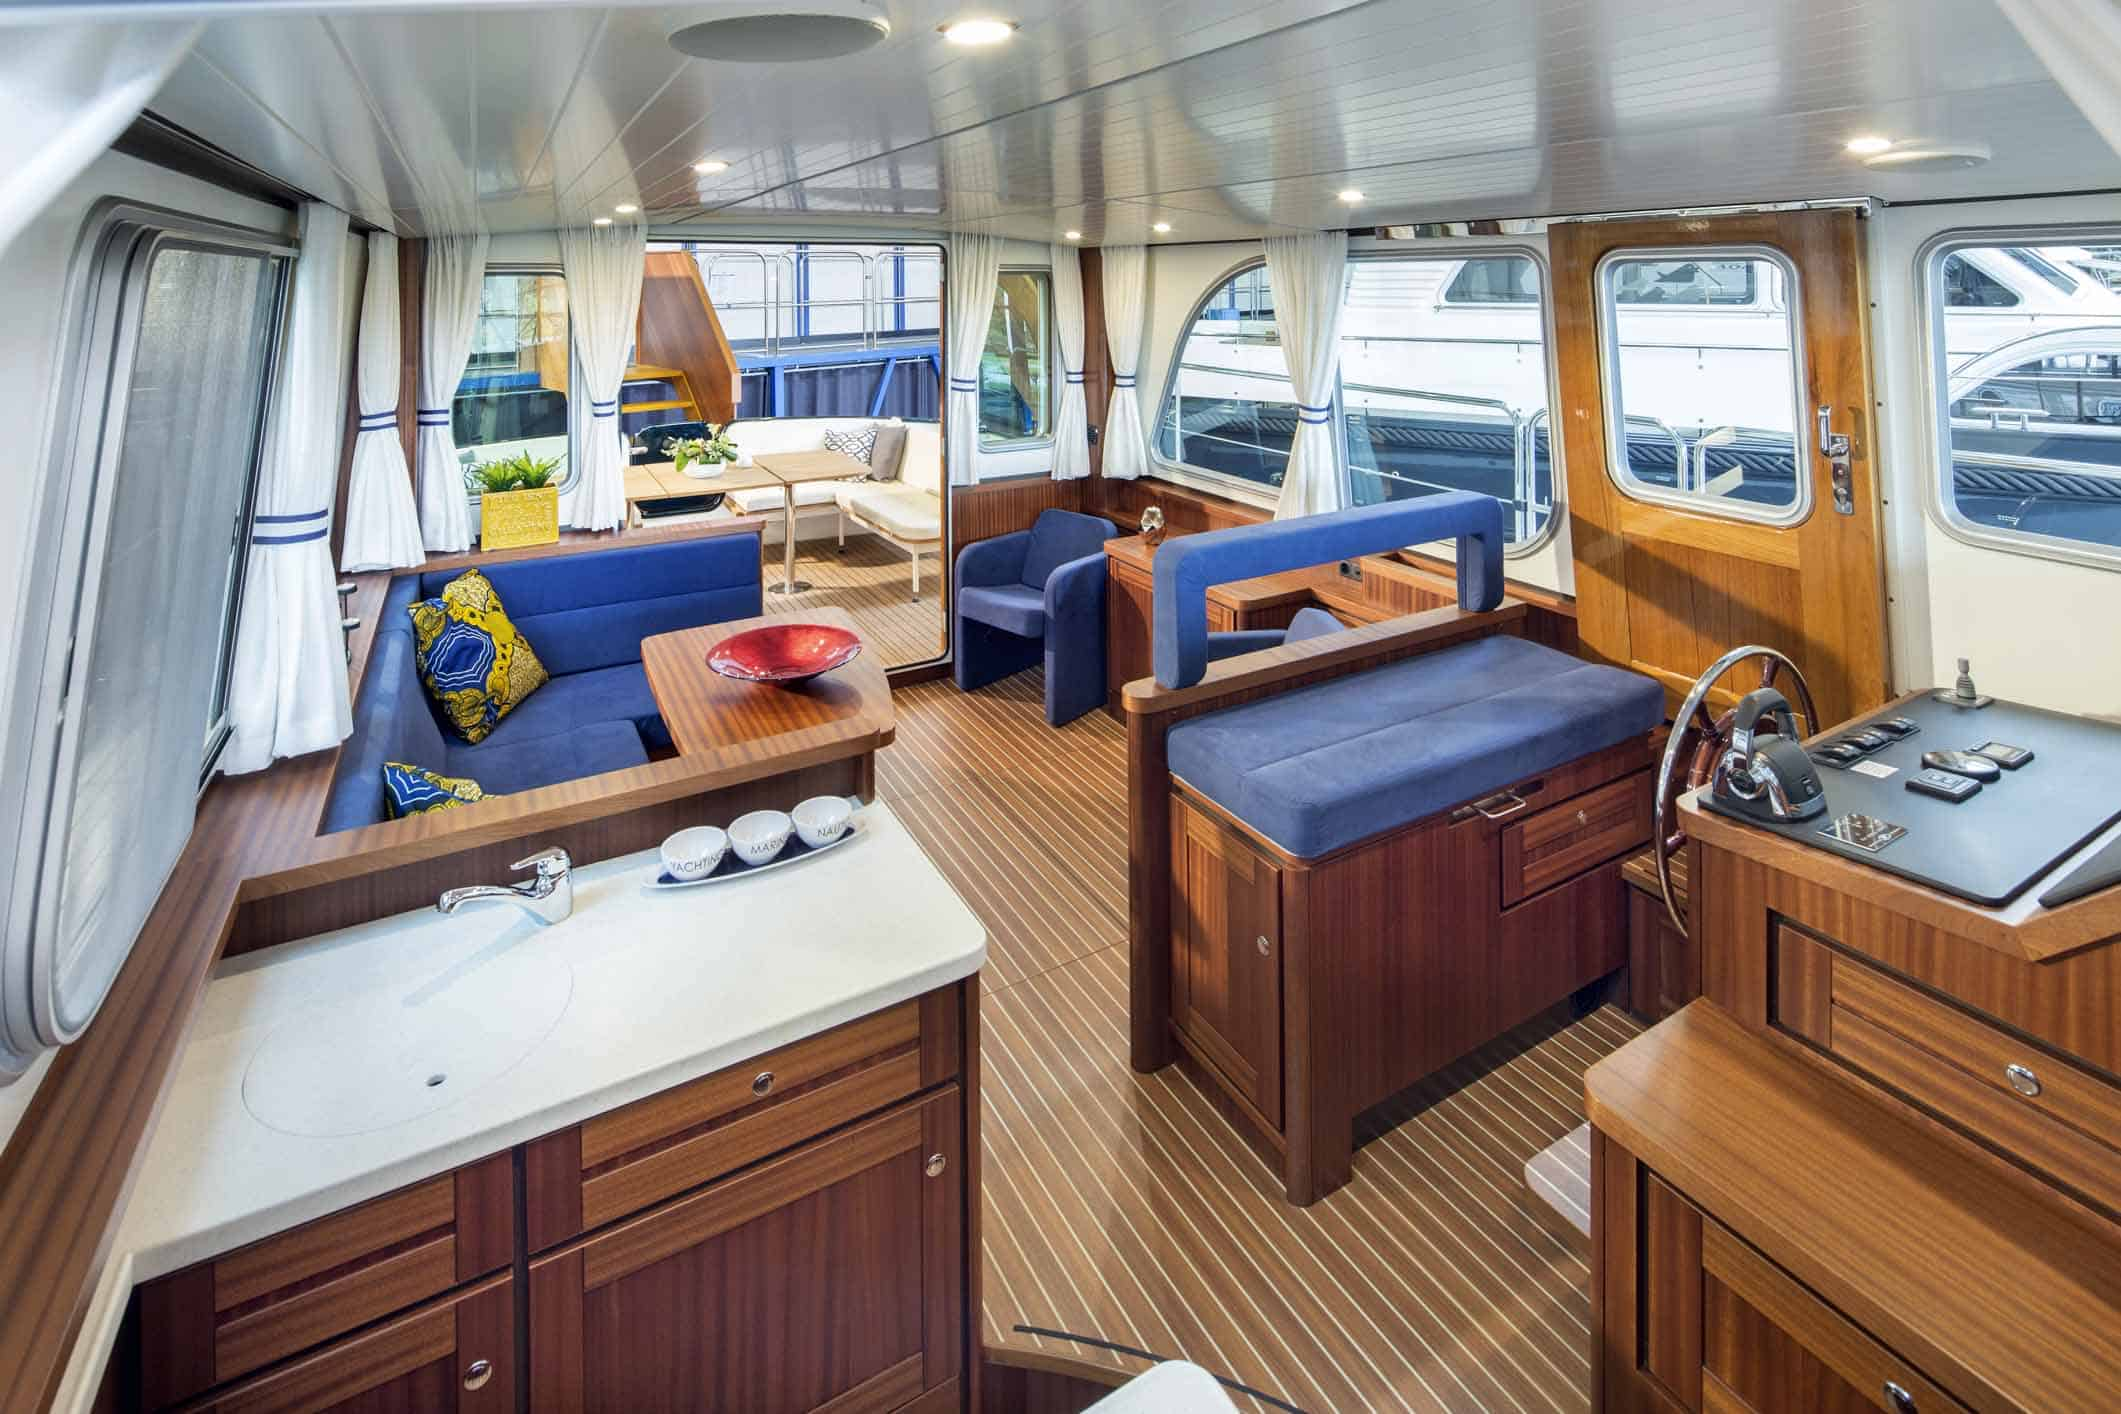 Linssen-Classic-Sturdy-410-Sedan-Deckbridge_251115-018